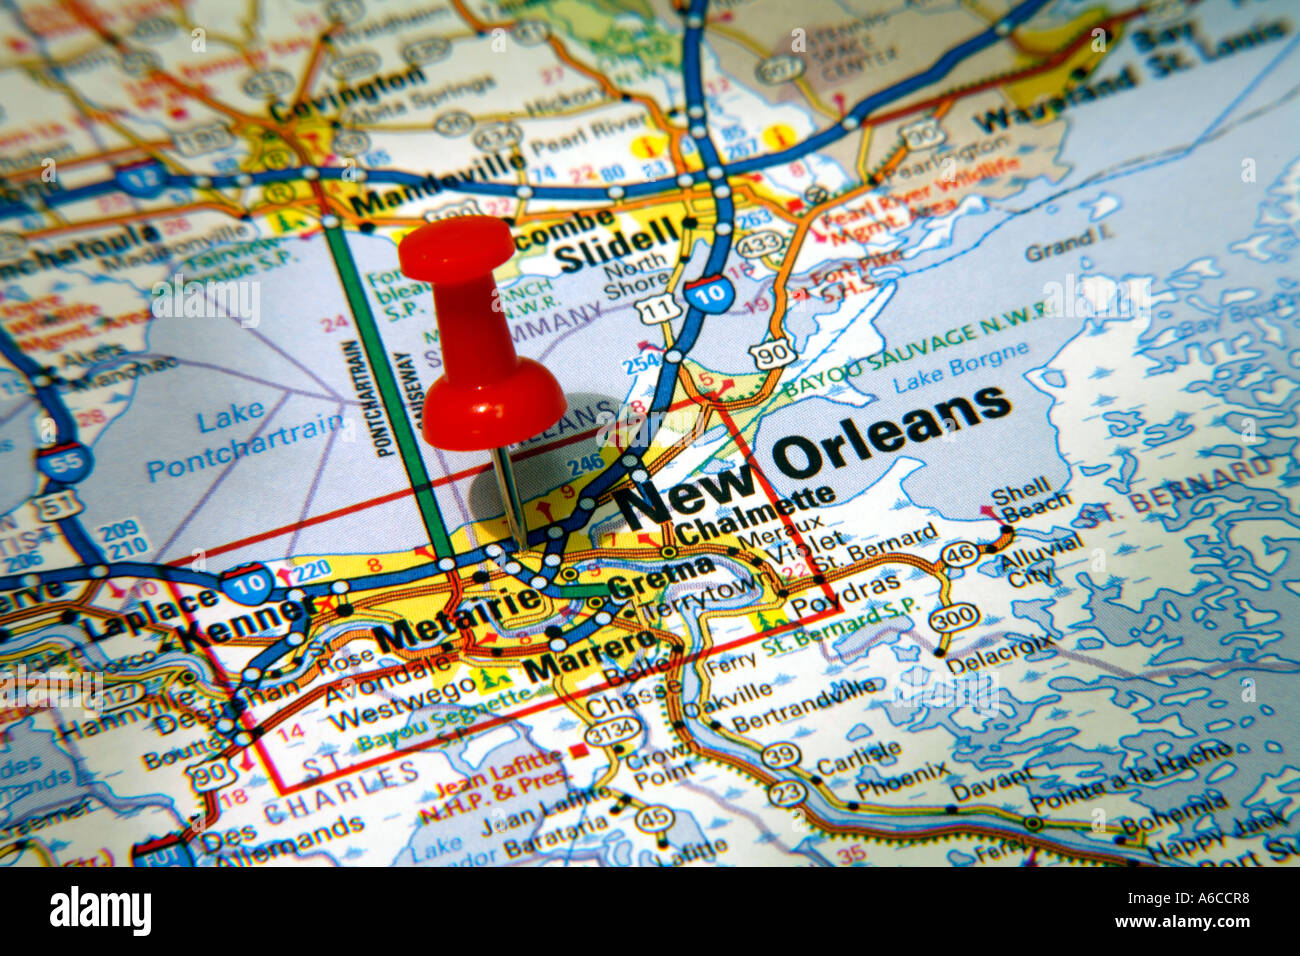 Louisiana New Orleans Map.Map Pin Pointing To New Orleans Louisiana Usa On A Road Map